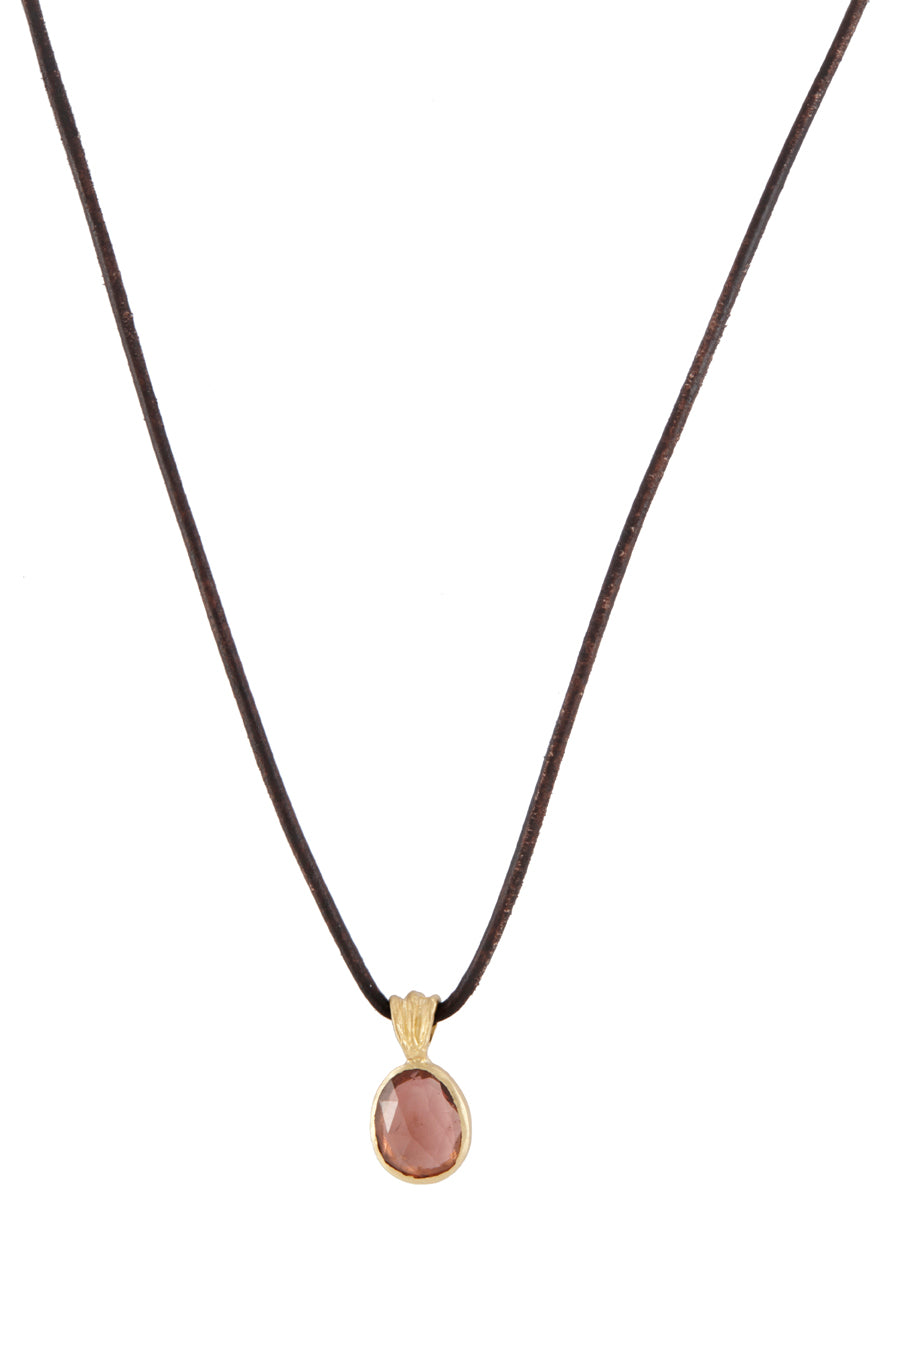 Umi Peach Tourmaline Necklace